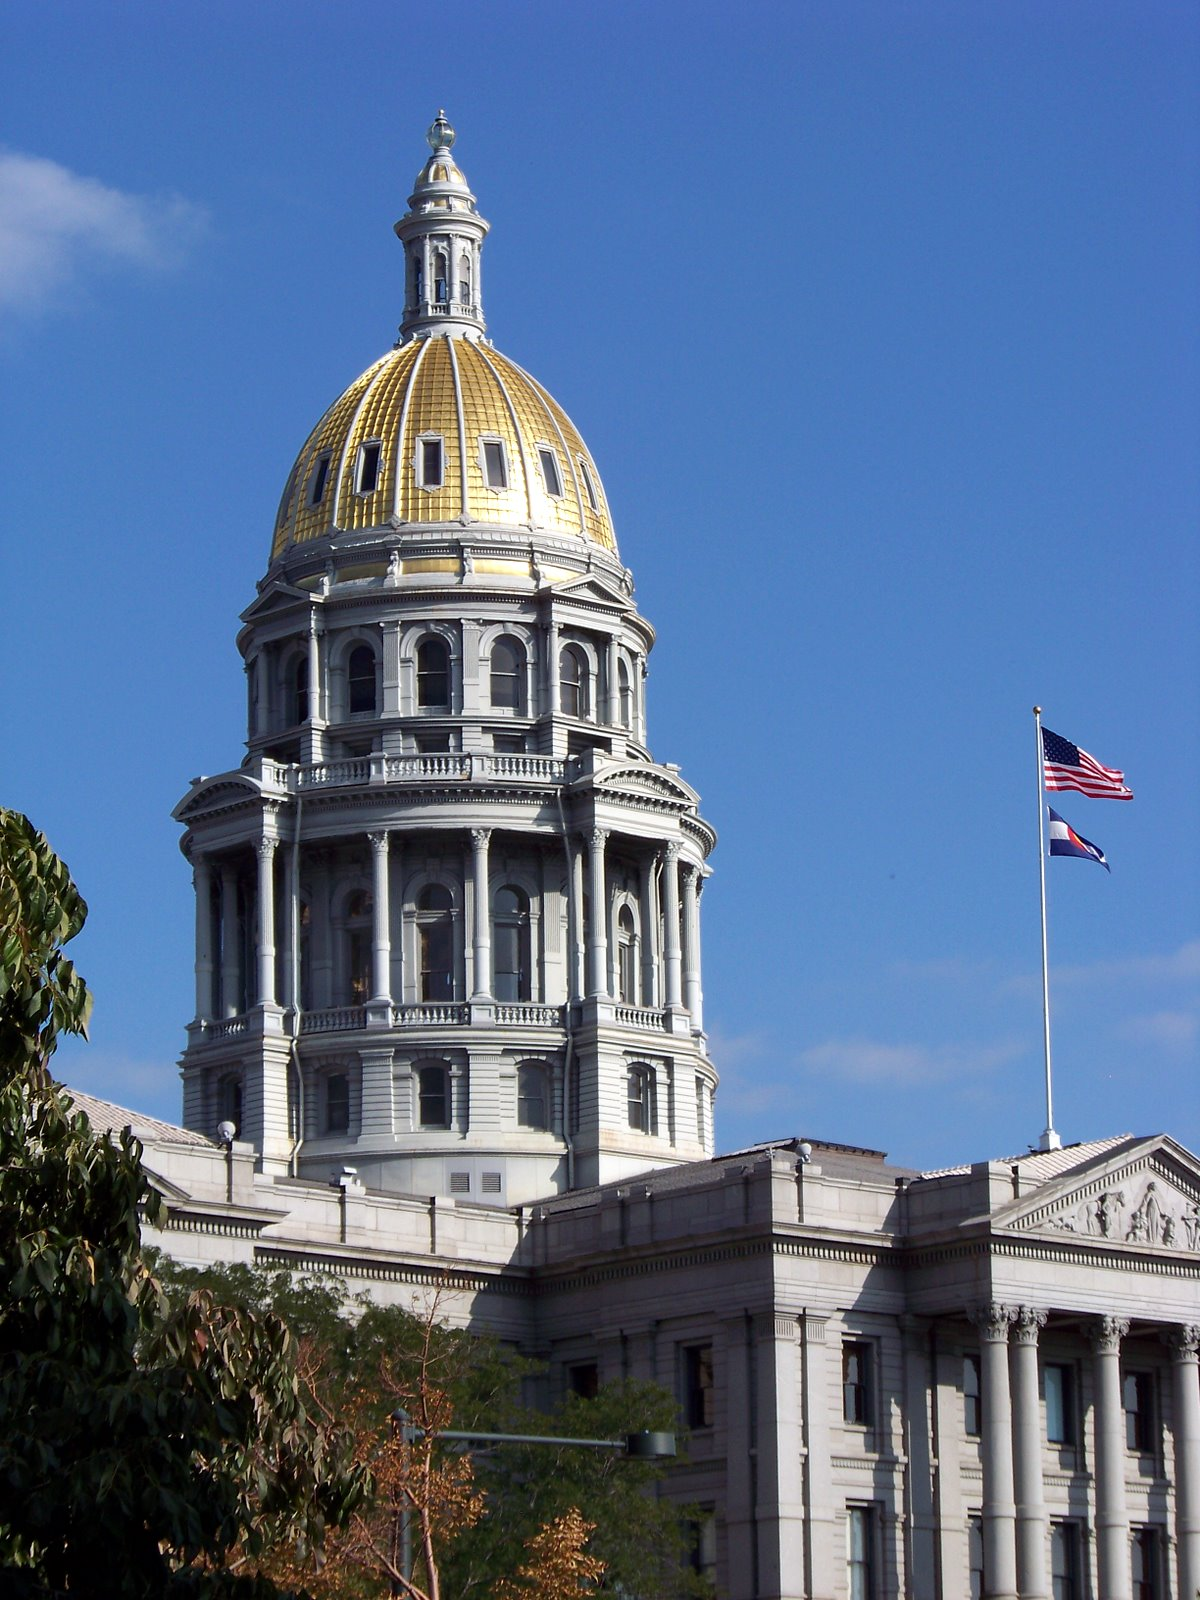 """Colorado State Capitol"" cc image courtesy of Ben Simo on FLICKR"